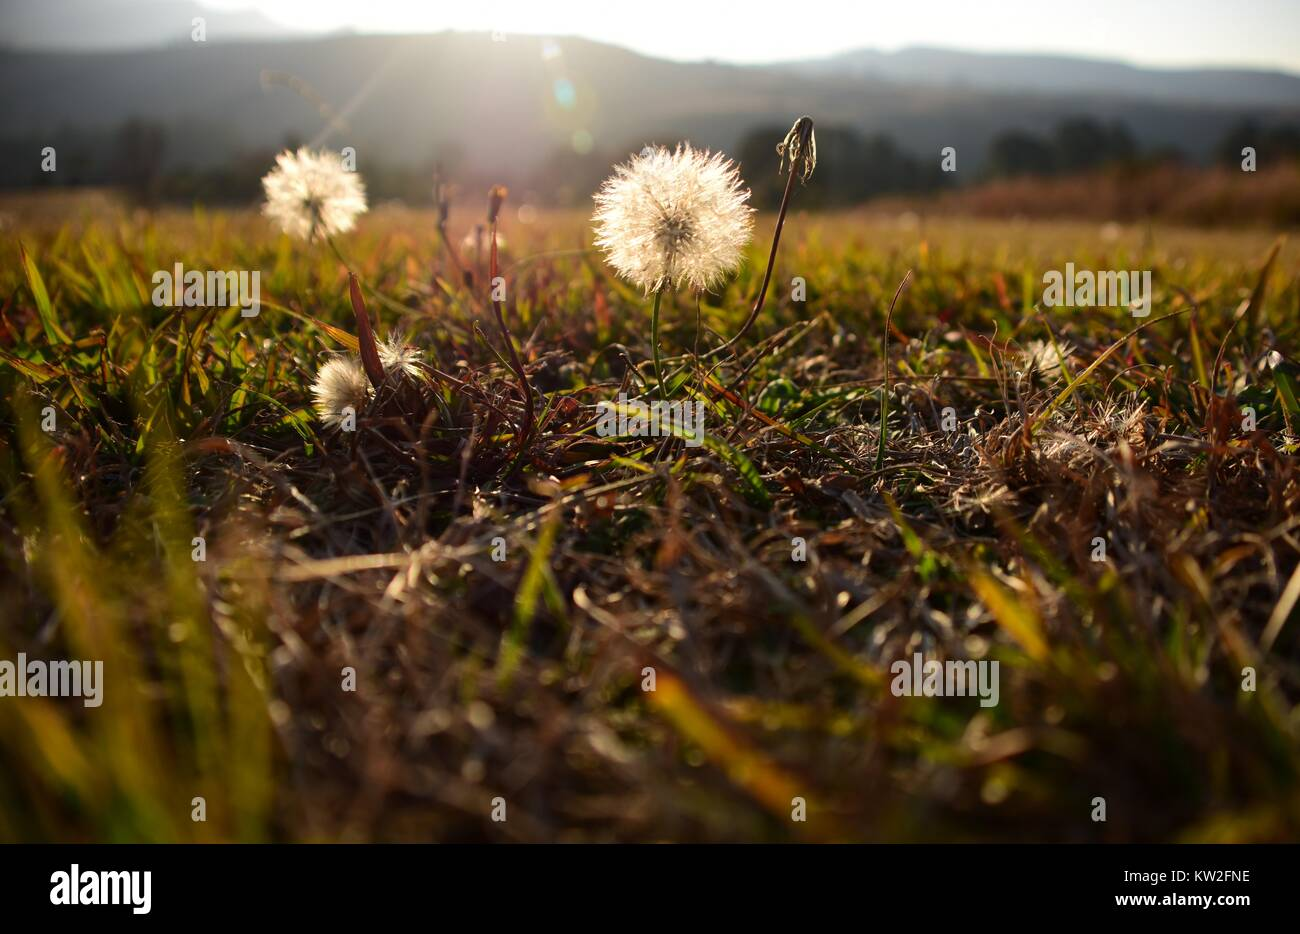 Dandelion seed heads in a green, grassy field shot at a low angle with the sun as backlight and mountains in the - Stock Image